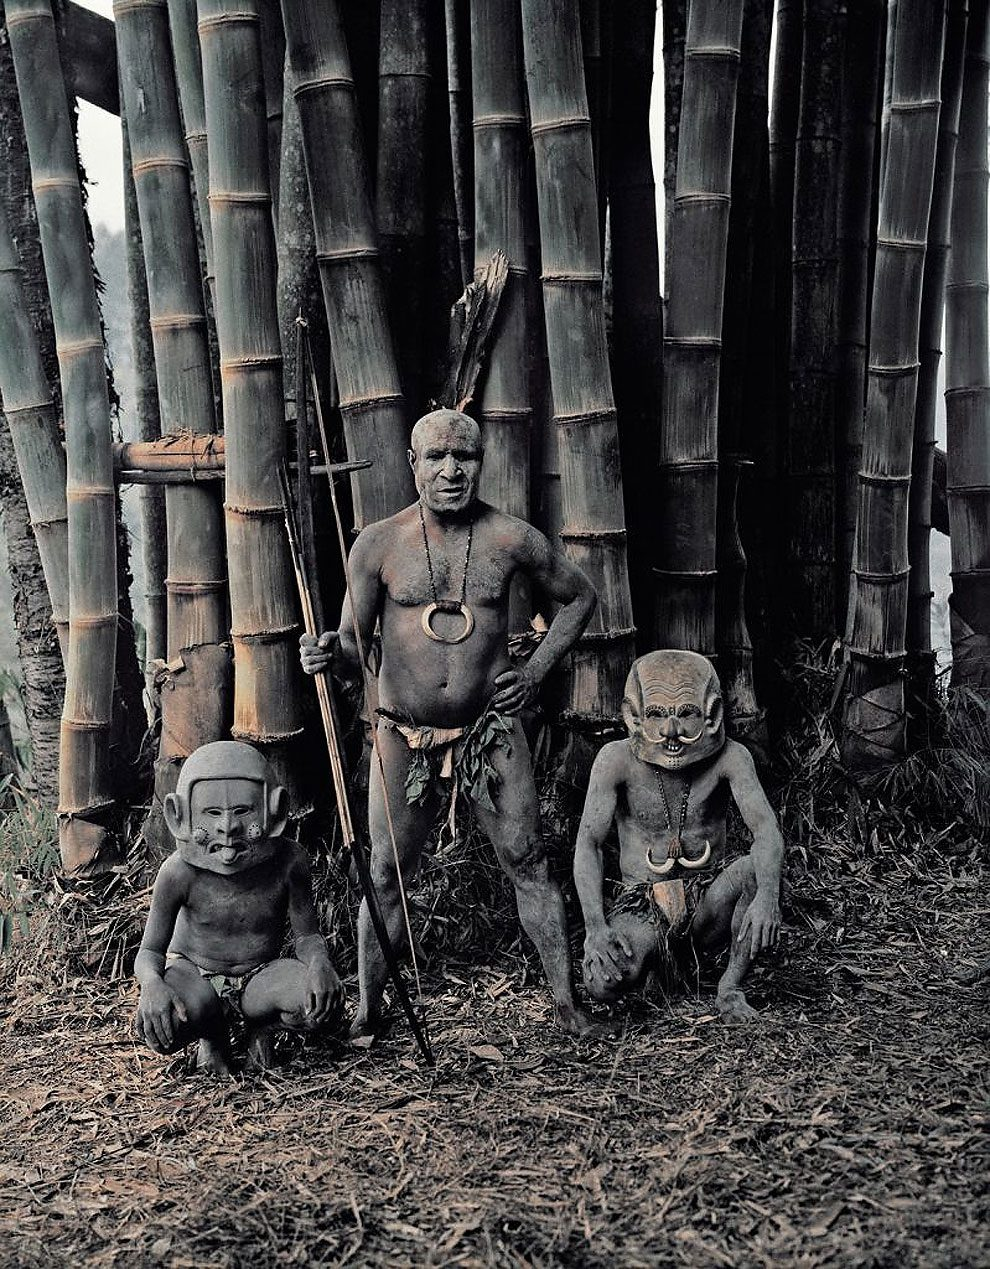 tribu-indigeni-mondo-fotografia-before-they-pass-away-jimmy-nelson-13